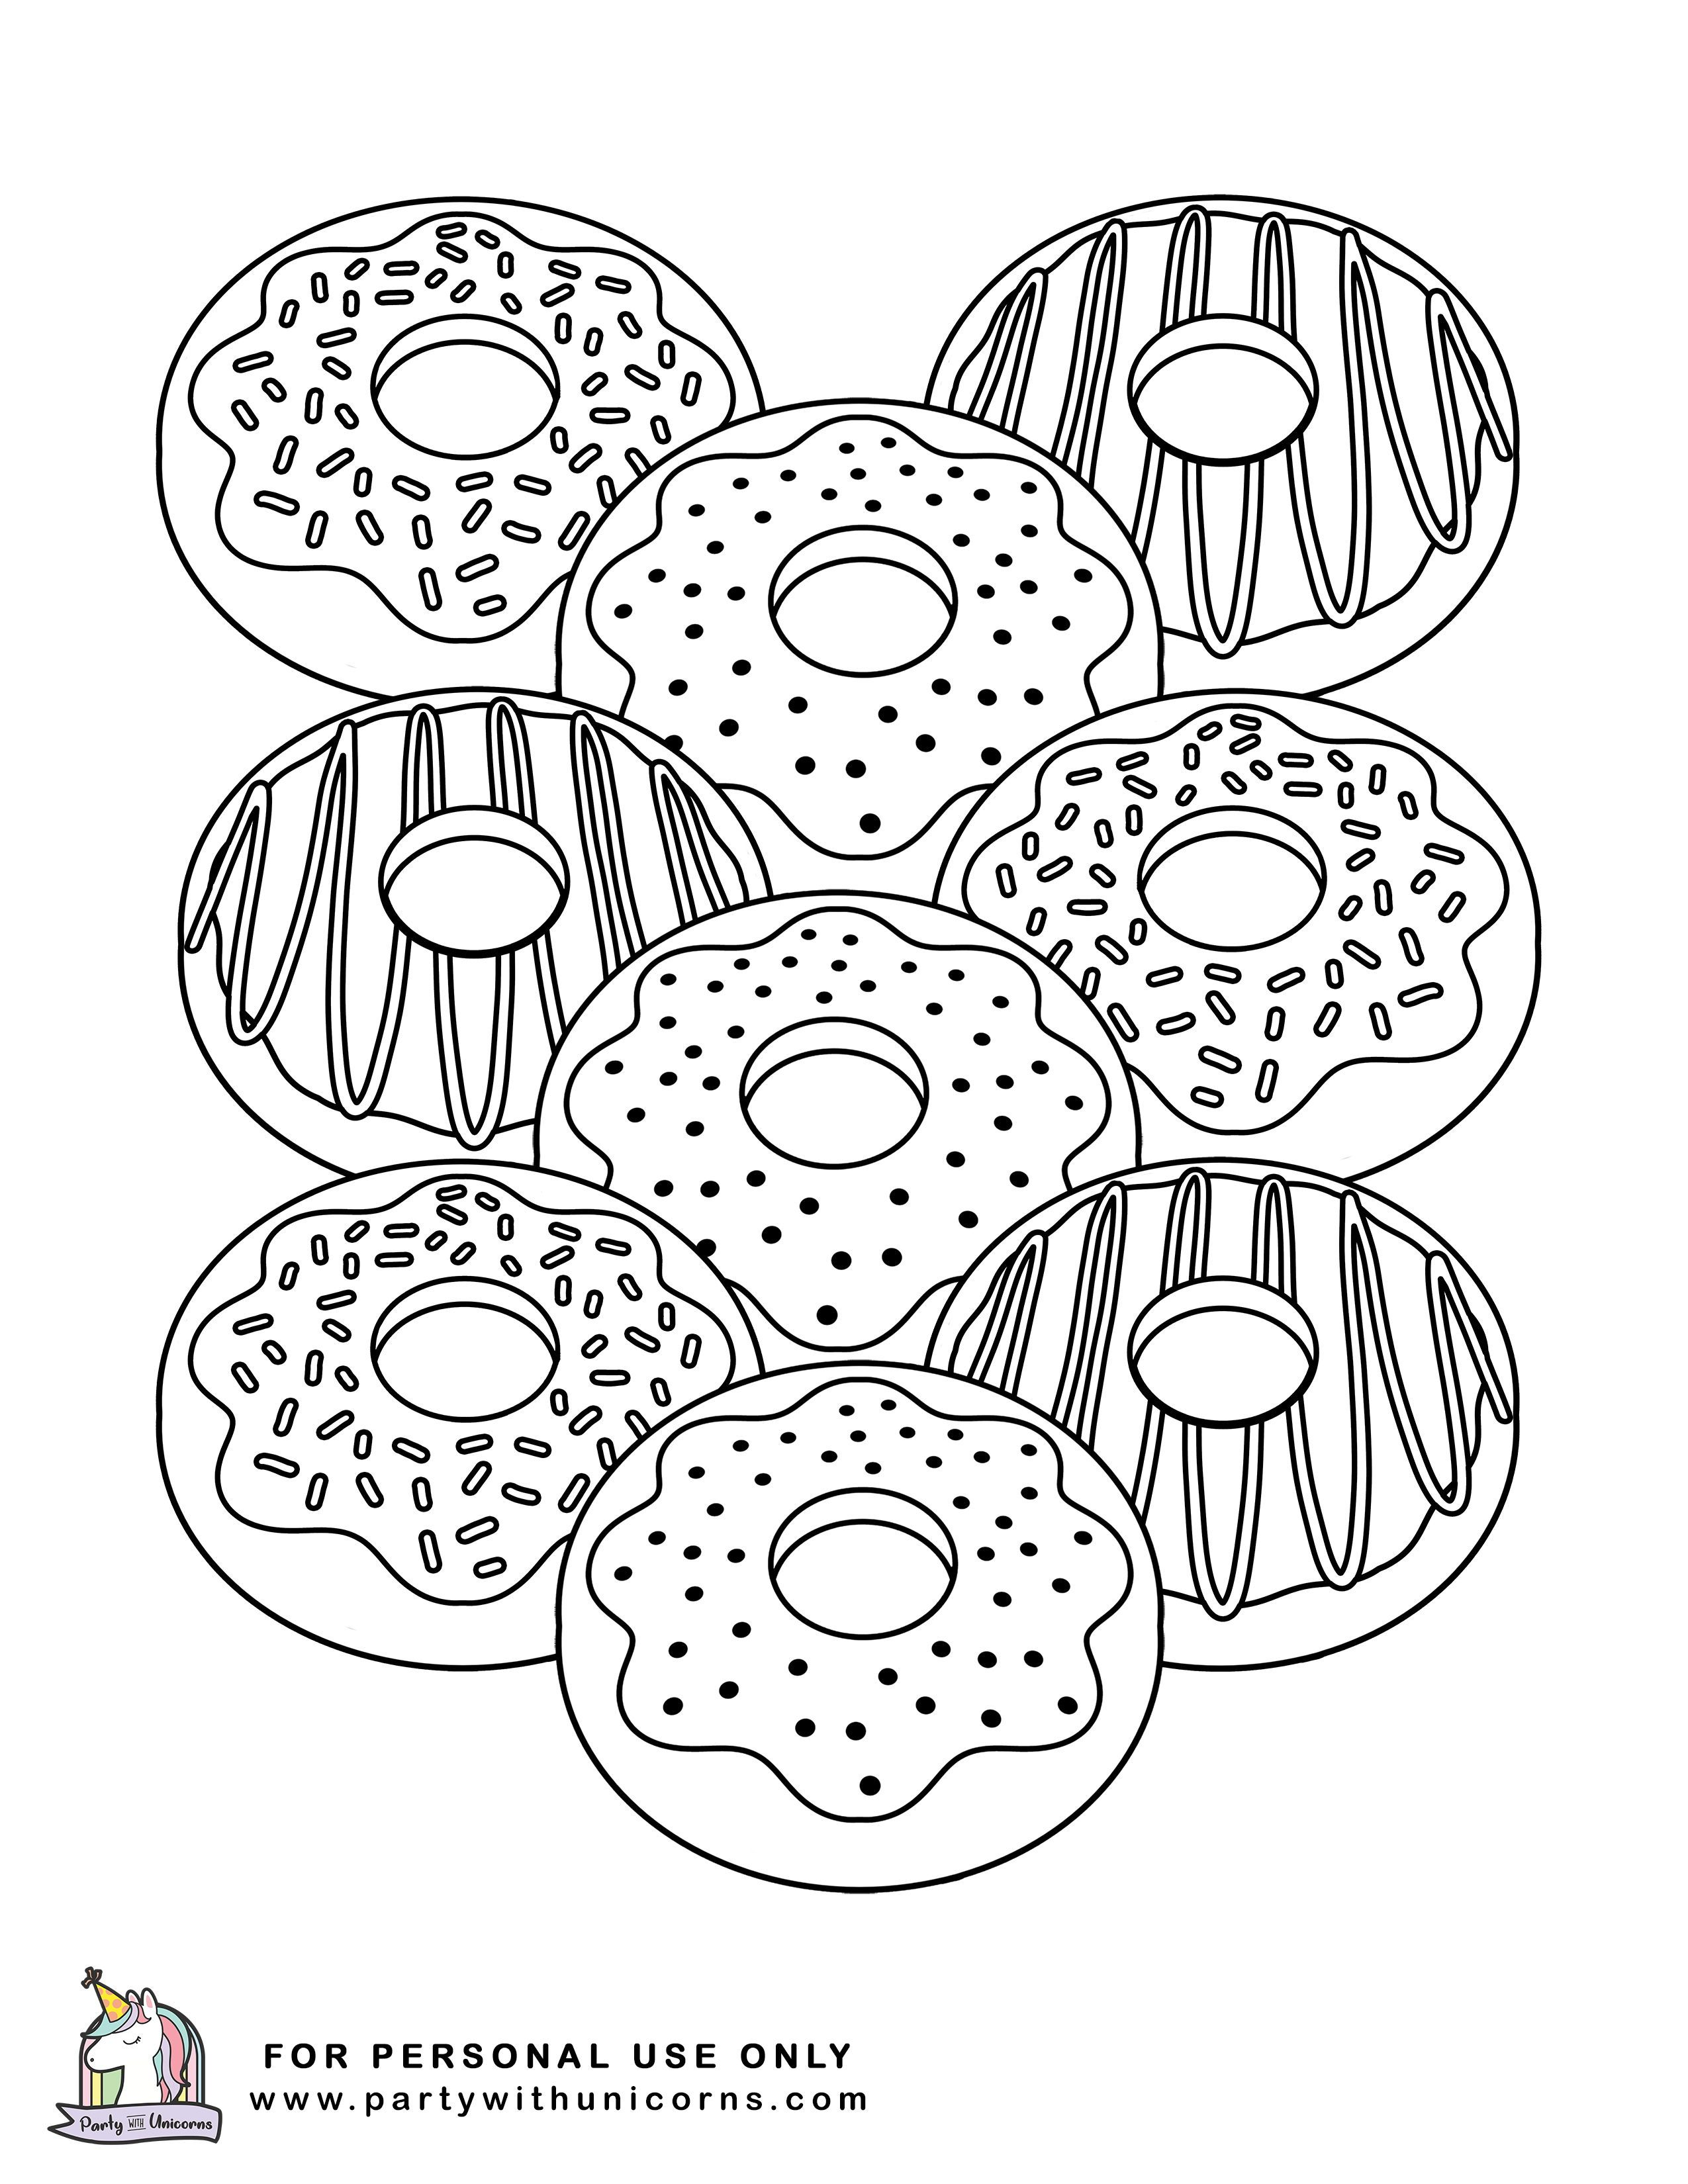 10 Donut Coloring Pages - Free Download  Donut coloring page